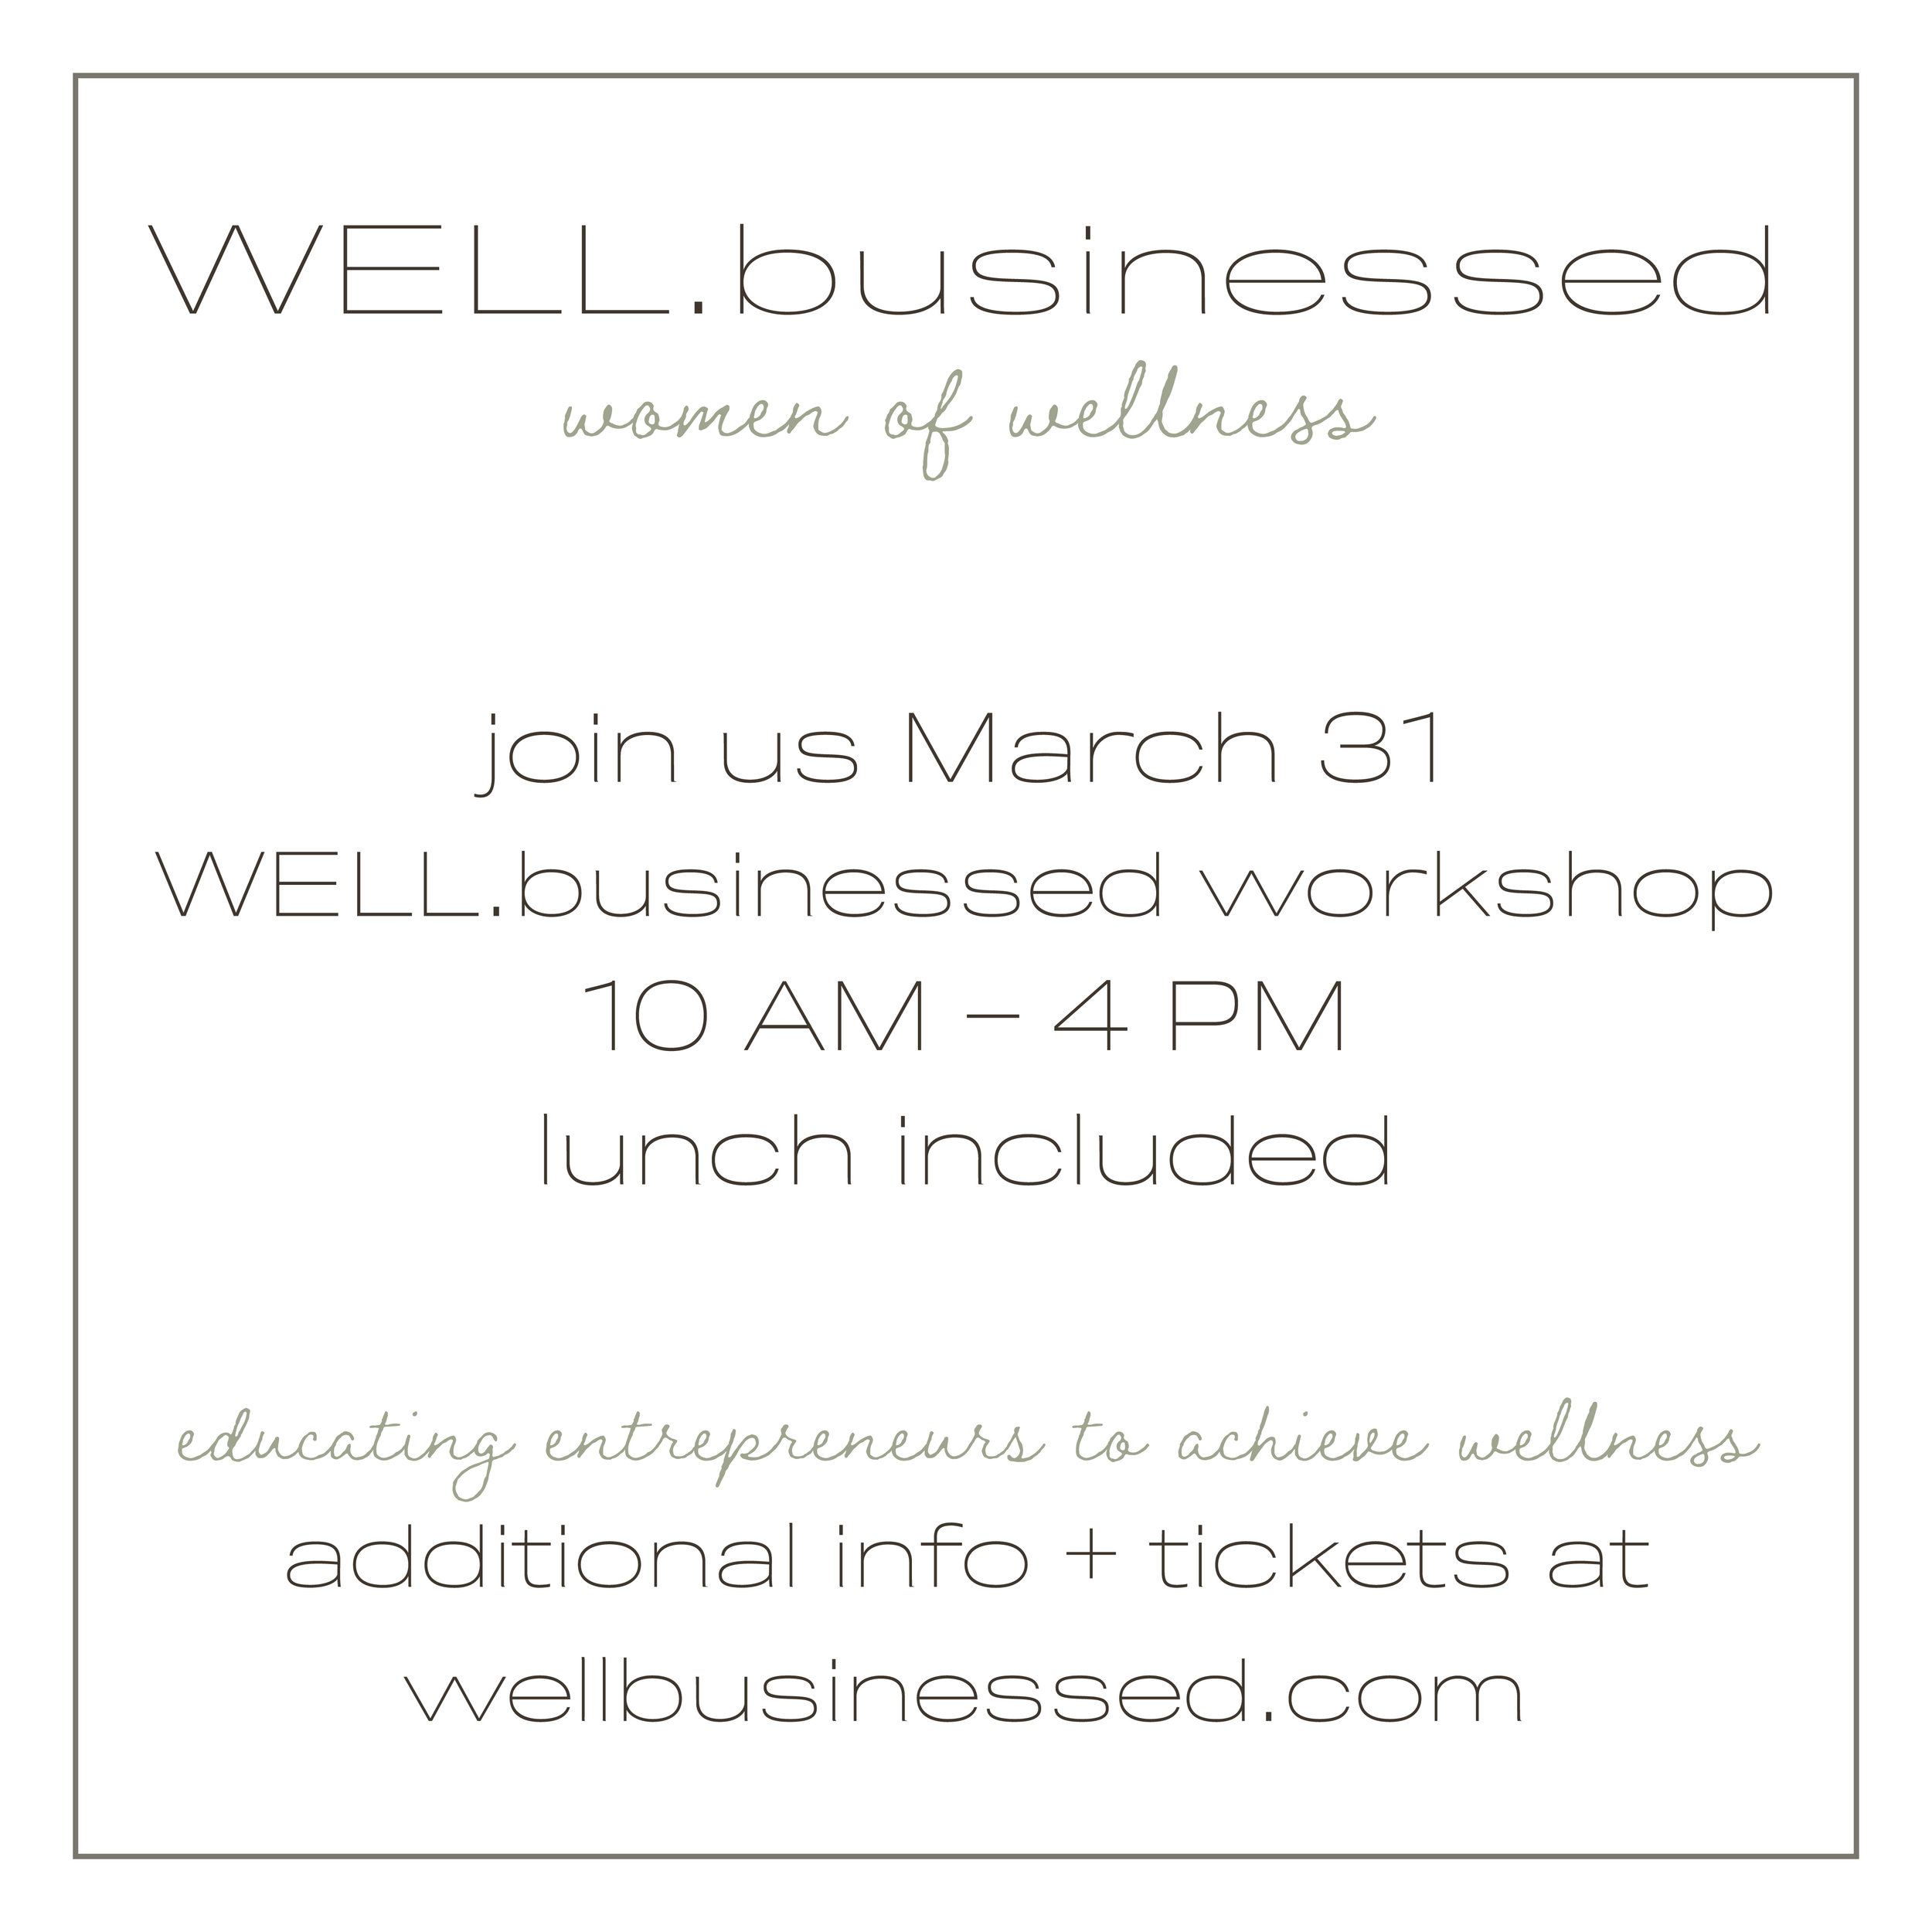 "WELL.Businessed Workshop - Sunday, March 31, 201910am-4pmStat Wellness1465 Howell Mill Rd NW Suite 300, Atlanta, GA 30318WELL.Businessed is a one-day educational workshop in Atlanta for entrepreneurs, creatives, small business owners, and overall go-getters seeking what it means to be ""well"" in all aspects of business. The day will include presentations from women founders and leaders of companies from a diverse range of fields, including health, finance, social media, public relations, and more. Speakers will be sharing real-life stories, learnings, and case studies that have been important markings in their journey of business wellness.Limited number of tickets are now available, and include snacks and beverages, lunch, and countless new connections, takeaways, and inspiration that will make your business soar."